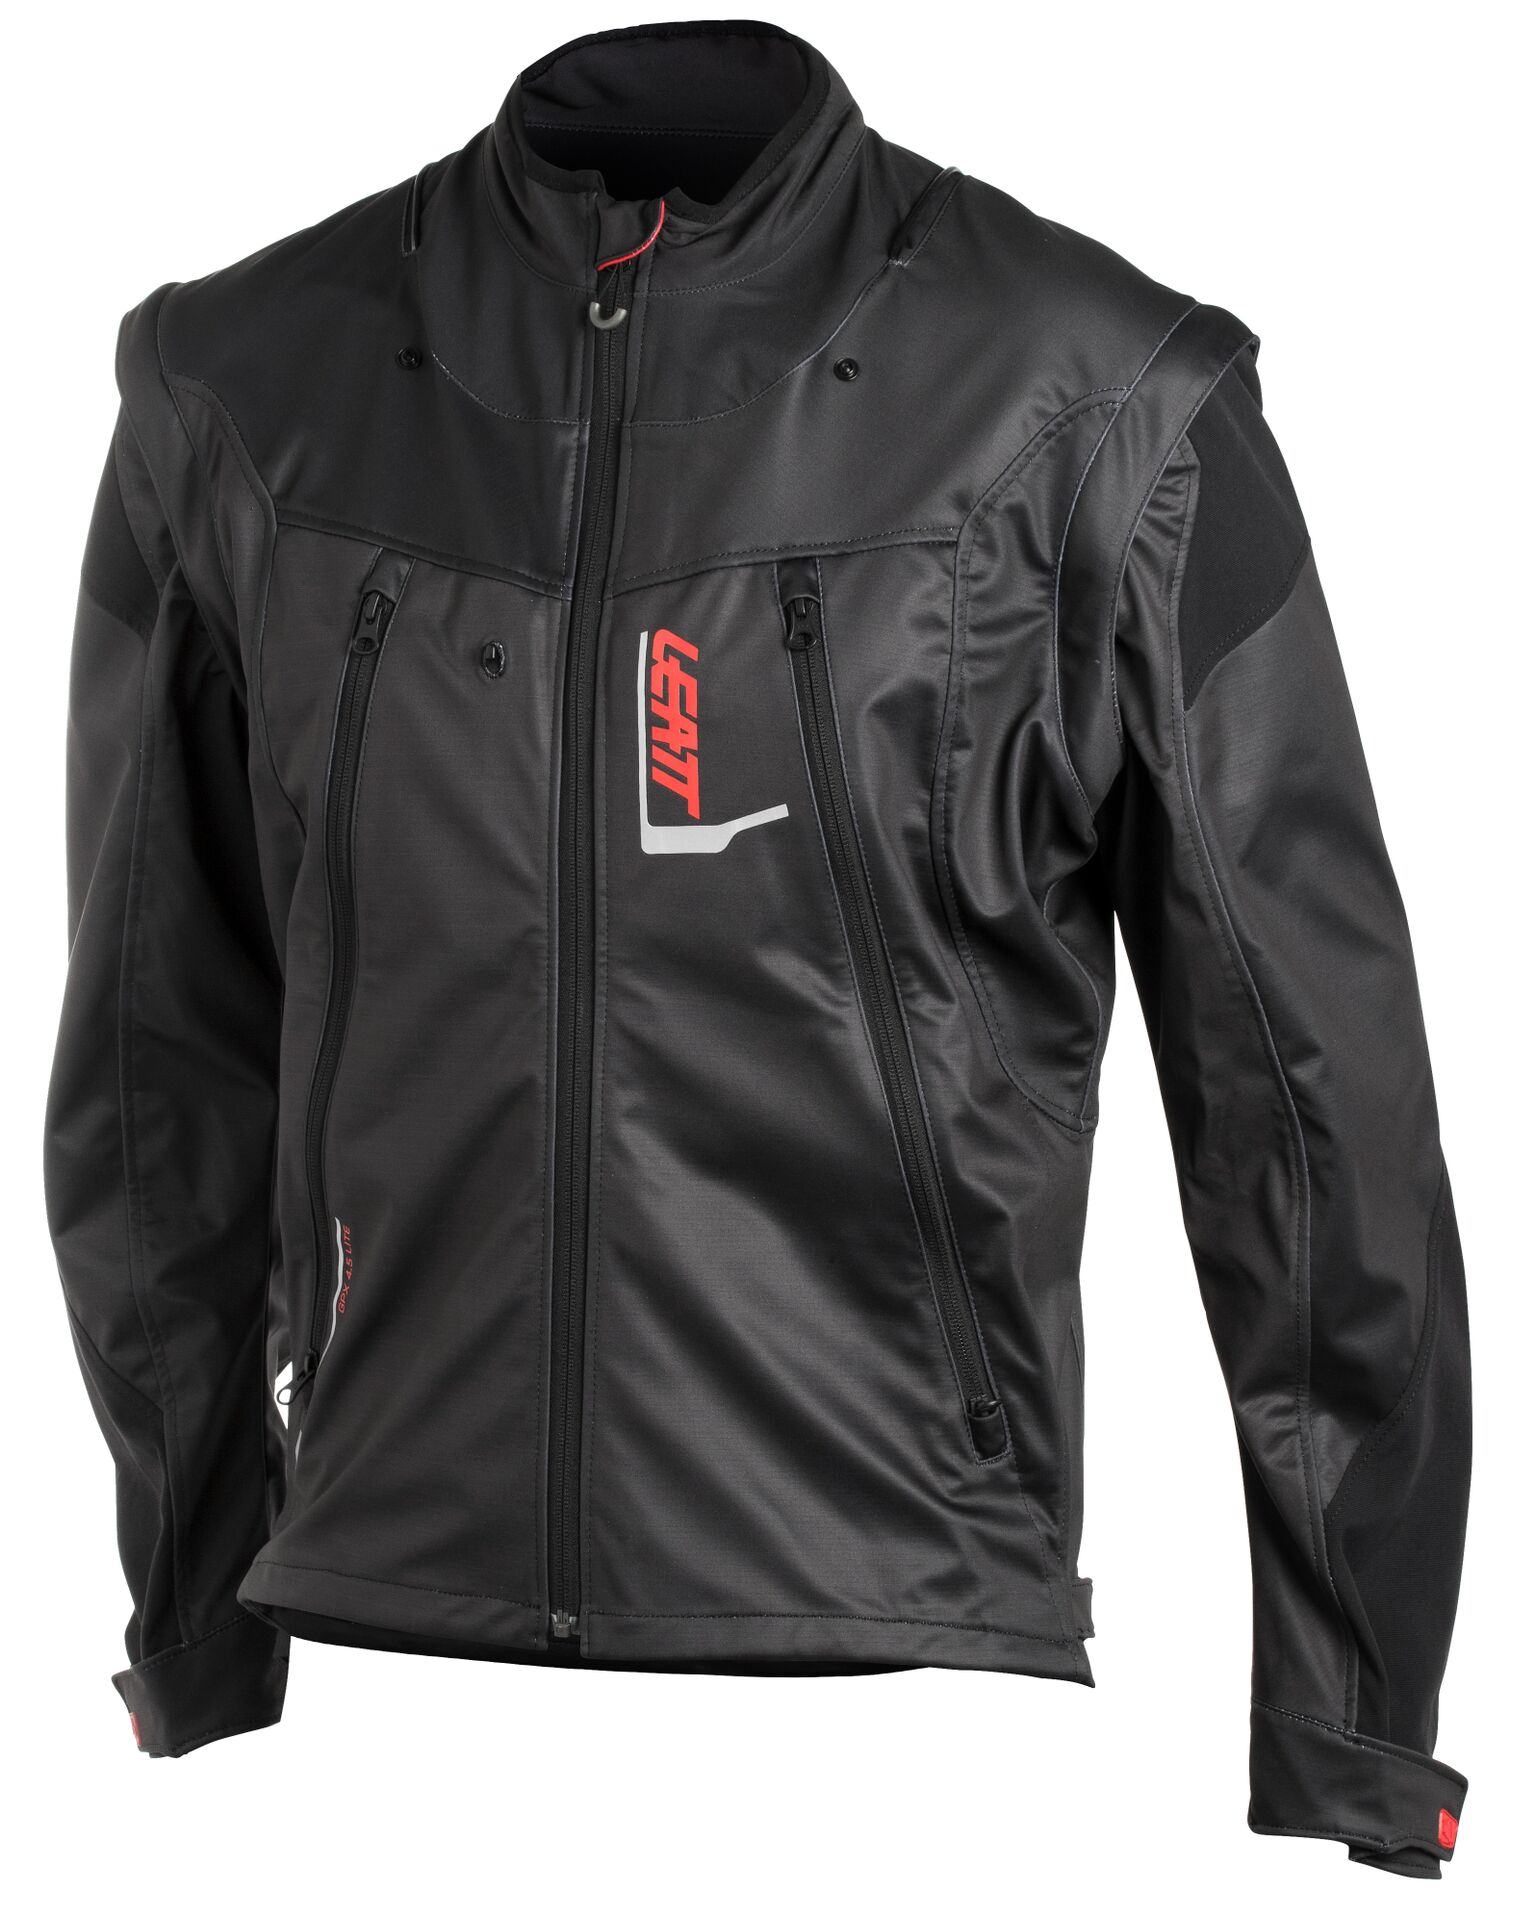 Jacket GPX 4.5 Lite Black Grey 2018_3.JPG